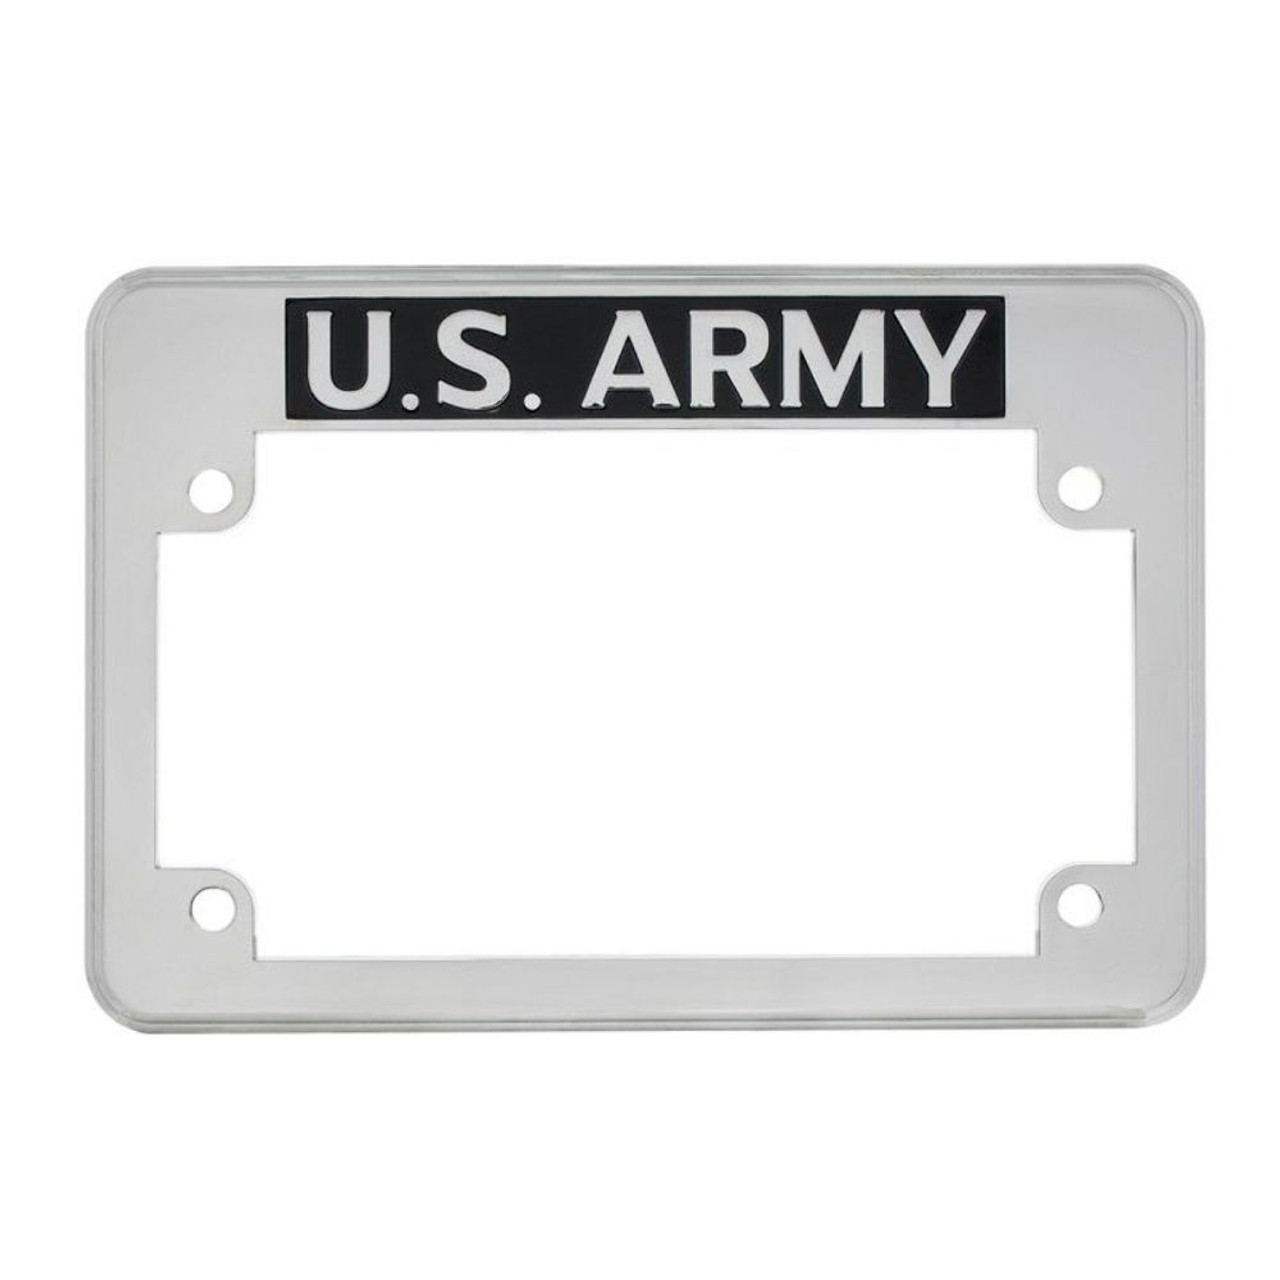 """""""U.S. Army""""  Motorcycle License Plate Frame -Fits: HARLEY CHOPPER TRIUMPH MORE"""